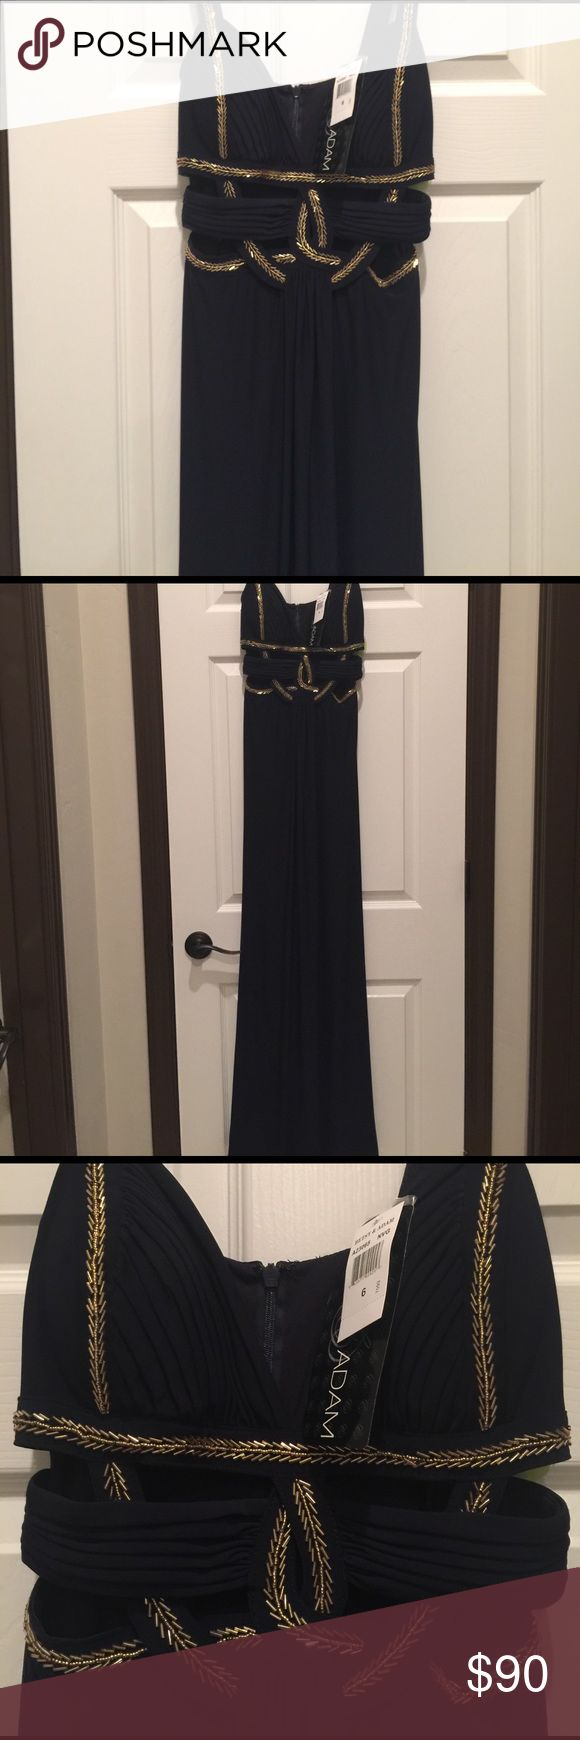 Navy-Gold sexy dress Gorgeous navy cut-out dress with very flattering gold embellishments. Fits true to size. Never worn and tags still on. Listed as Sherri Hill for brand exposure, but the brand is WINDSOR. Price is negotiable. Sherri Hill Dresses Prom